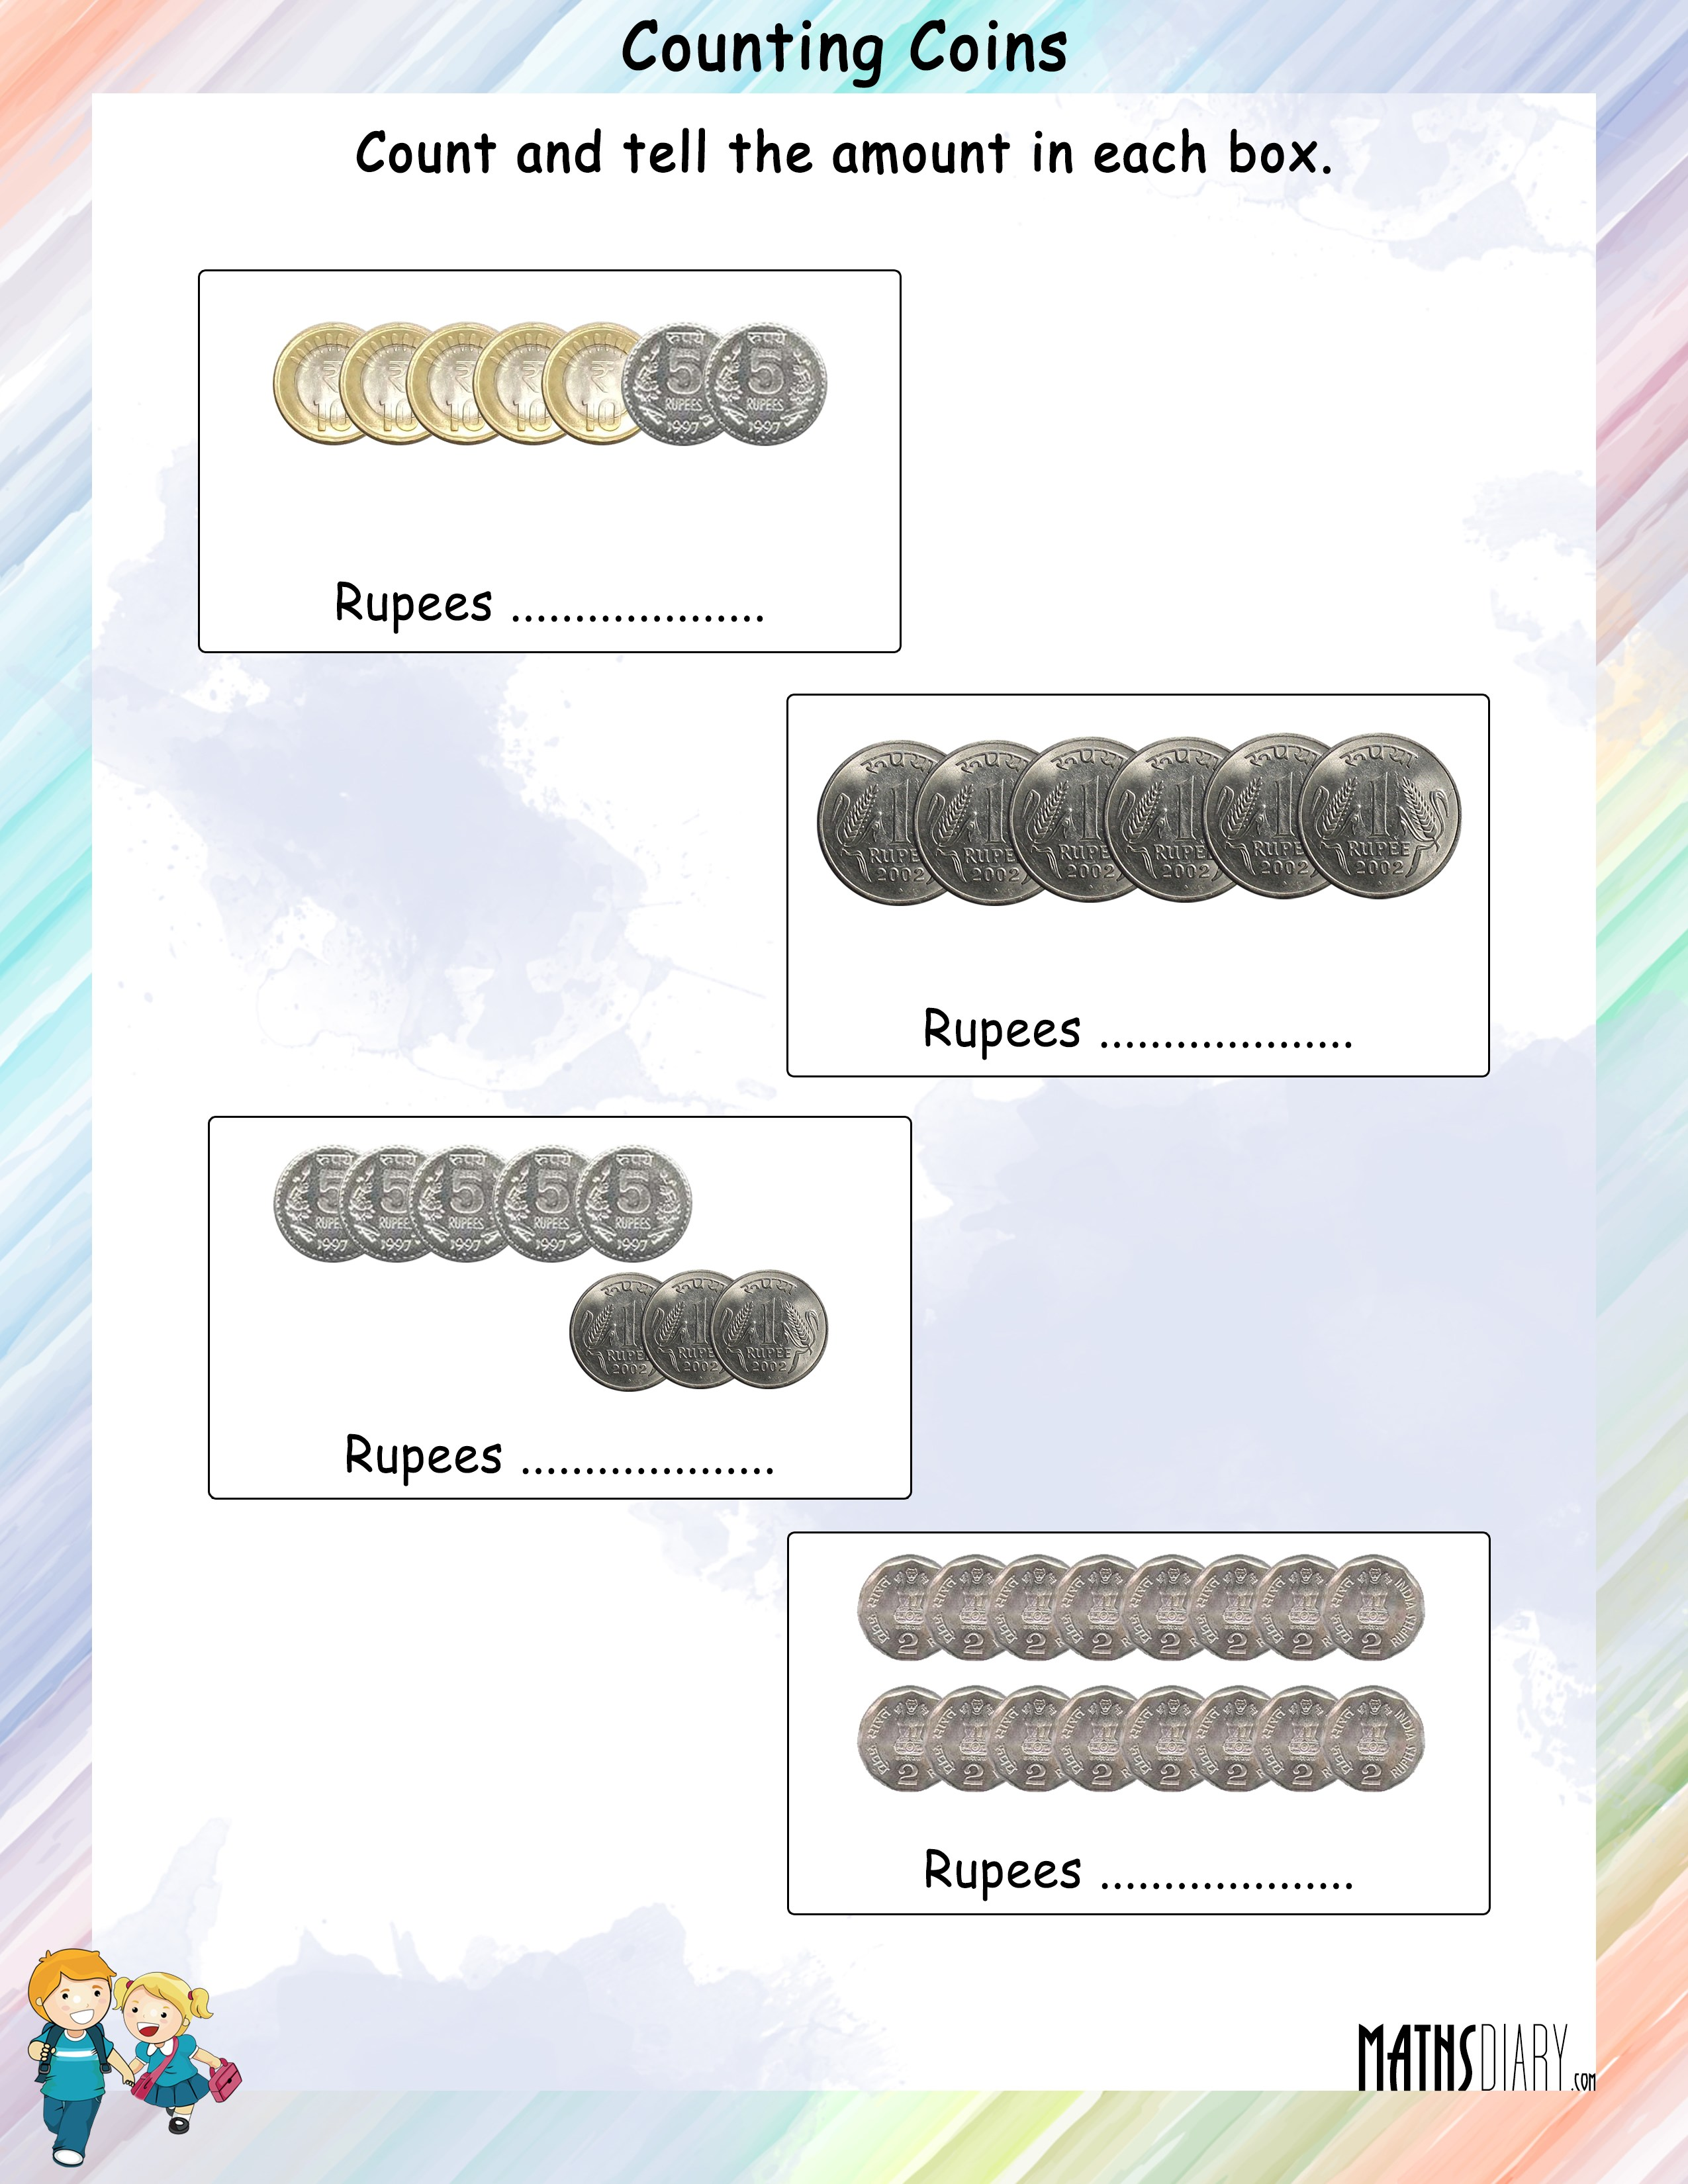 Count The Coins And Tell The Amount Worksheets